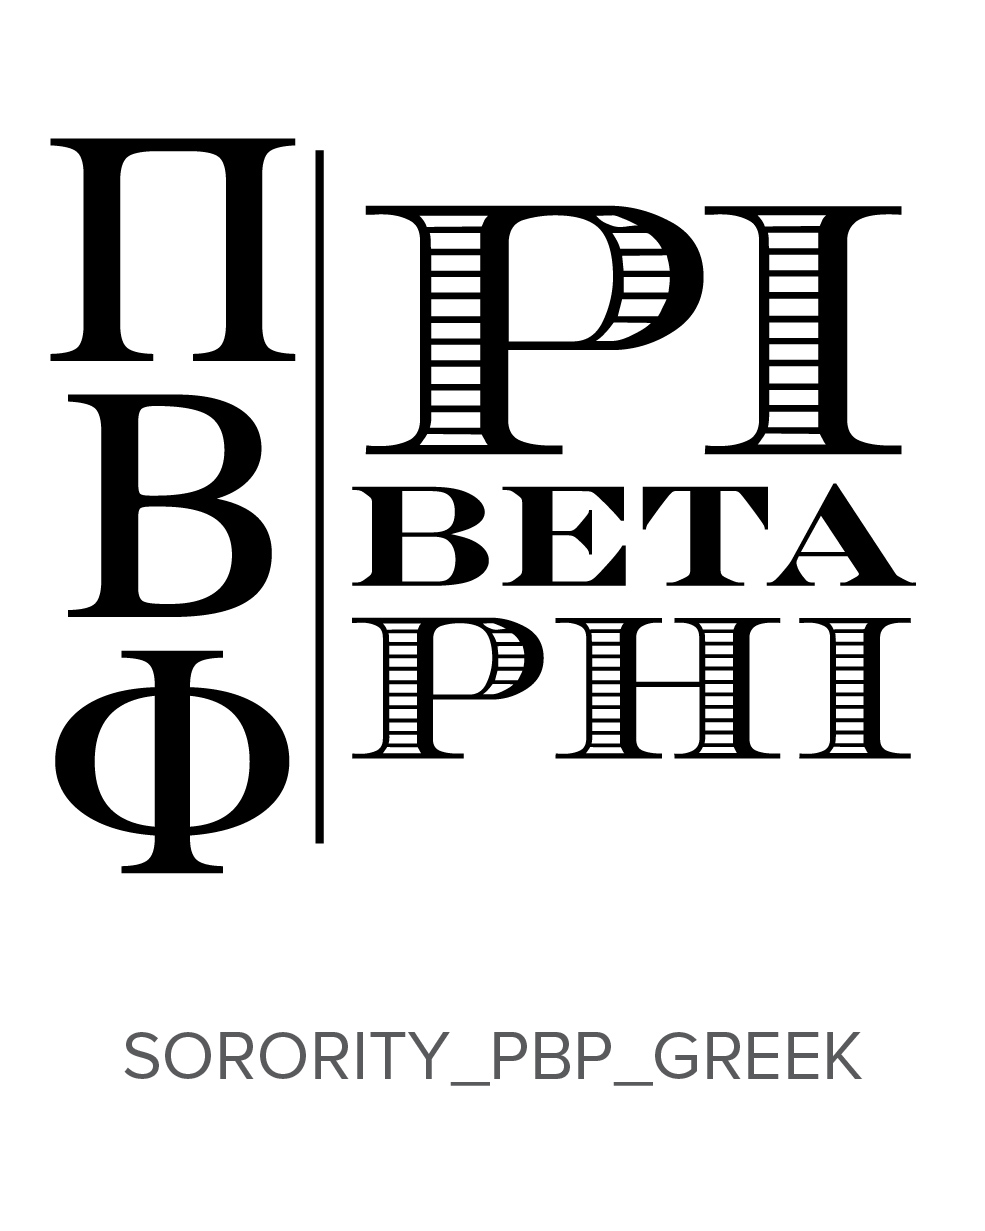 Mix and Match_Greek-85.jpg